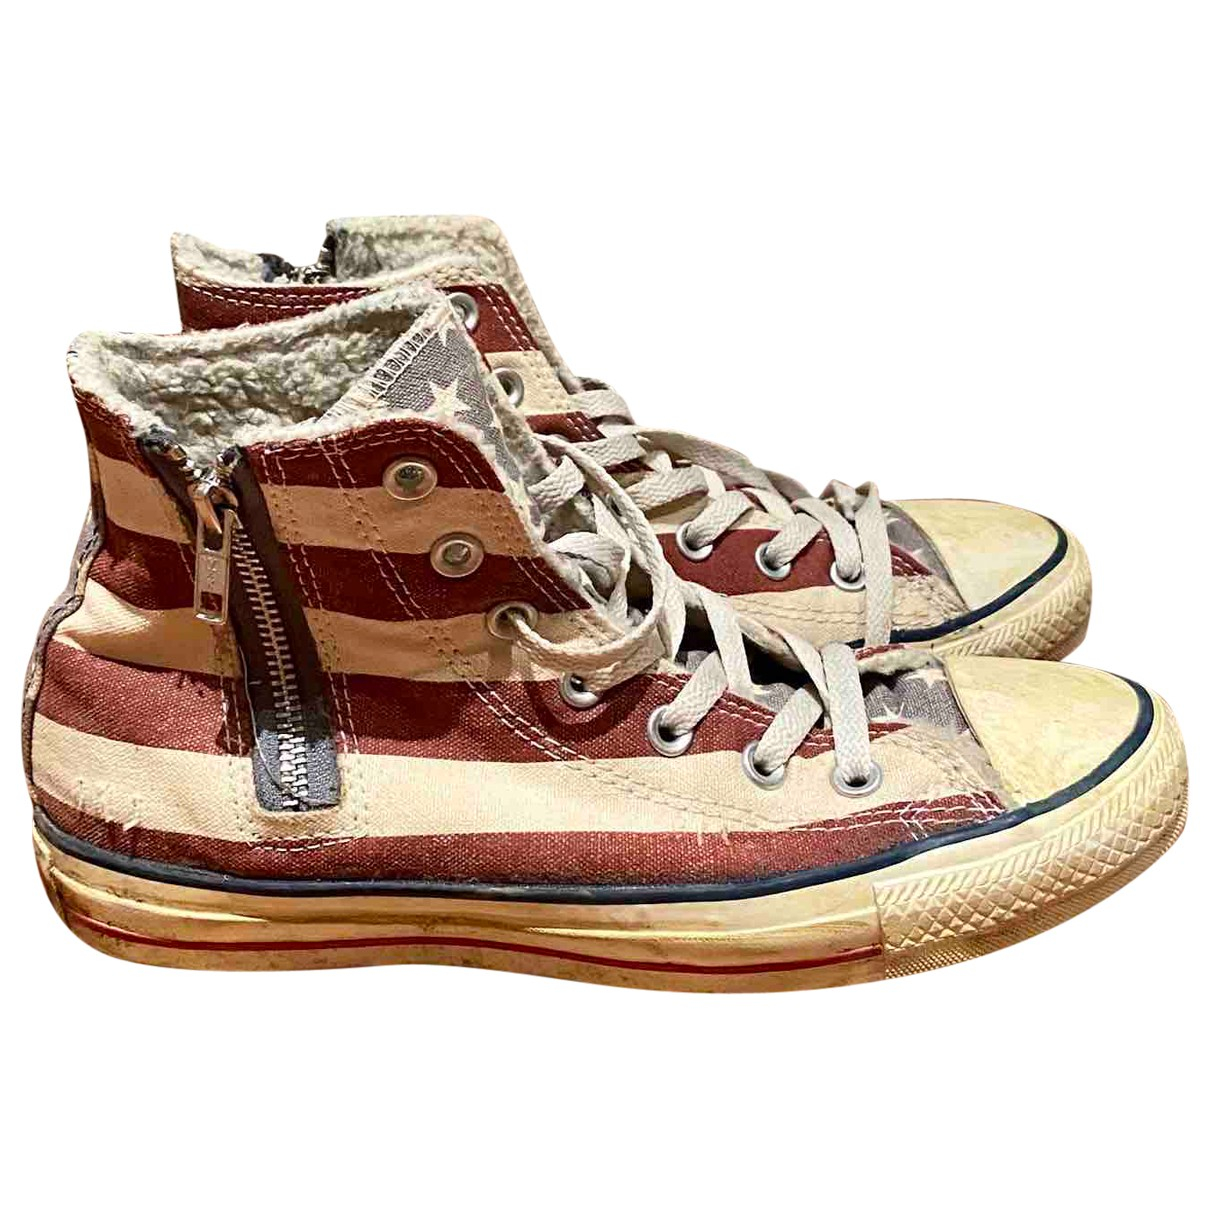 Converse N Multicolour Cloth Ankle boots for Women 5.5 UK